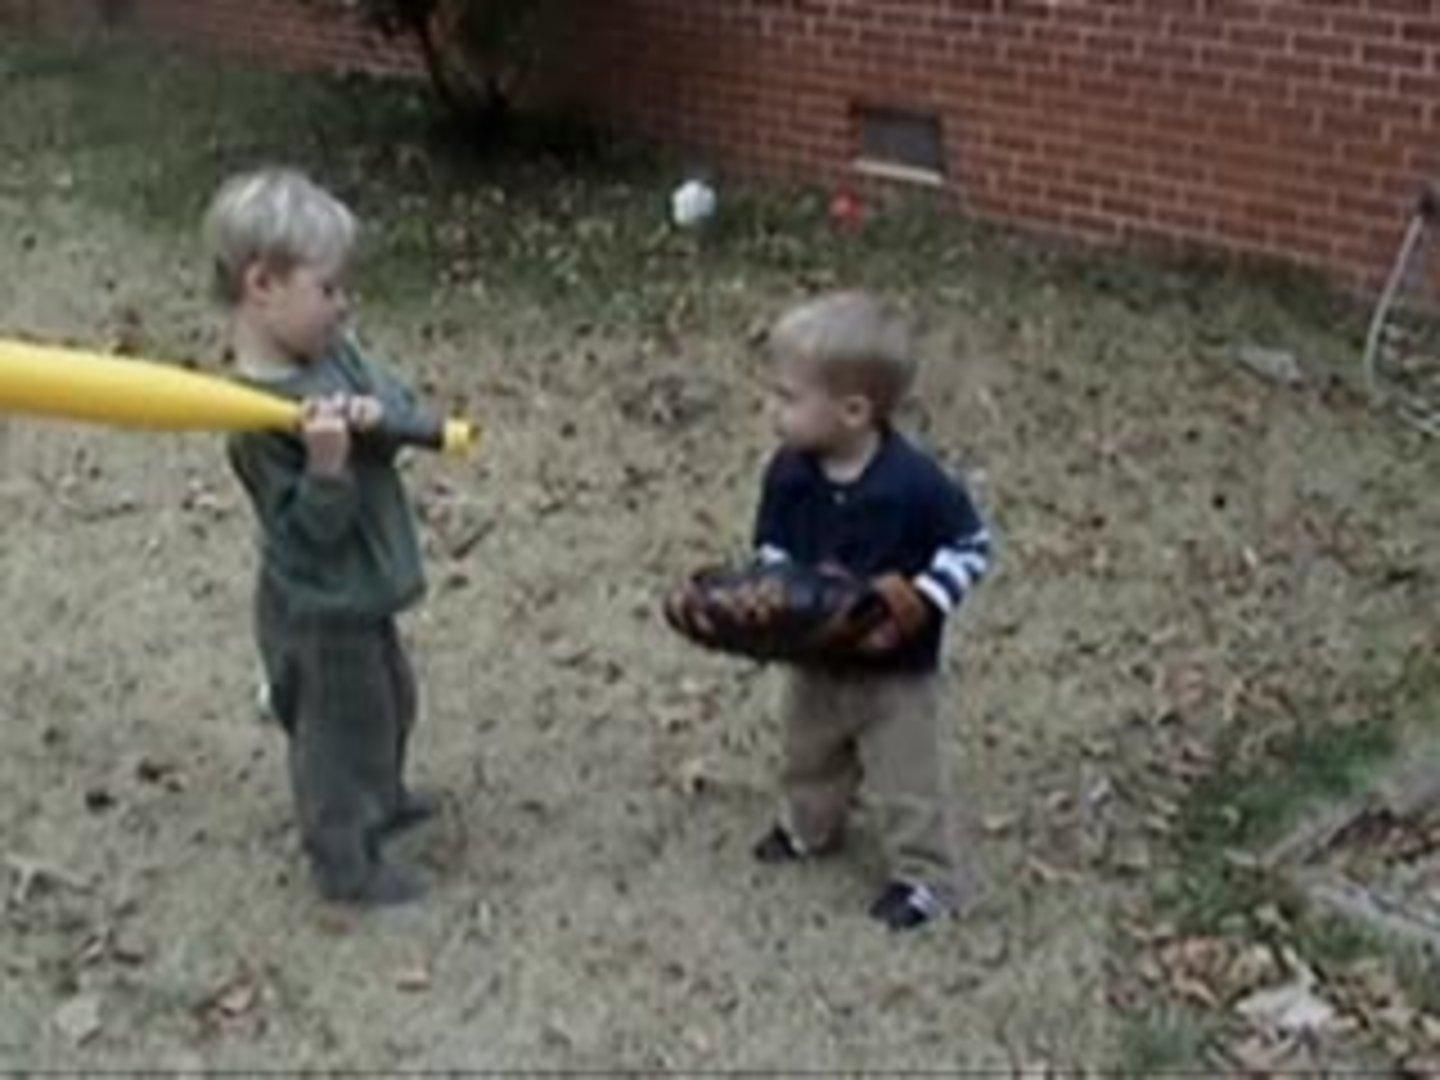 kid accidentally hits brother with bat jukin media